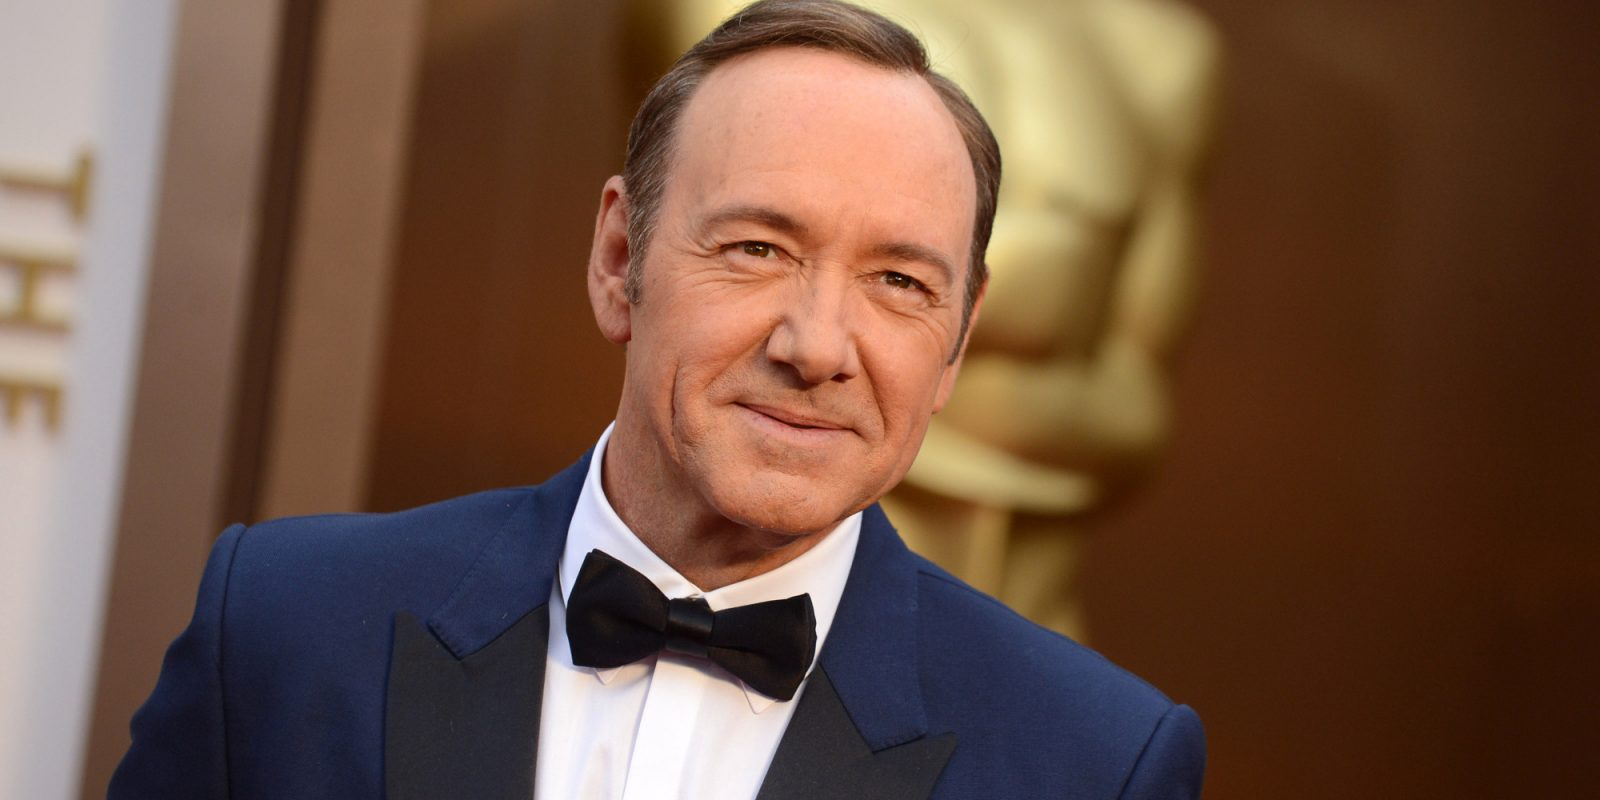 FILE - In this Sunday, March 2, 2014, file photo, actor Kevin Spacey arrives at the Oscars on , at the Dolby Theatre in Los Angeles. Spacey greeted Maryland lawmakers at a wine bar Friday night, March 21, 2014, to help promote an expansion of a tax credit for filming movies and television shows in the state. (Photo by Jordan Strauss/Invision/AP, File)